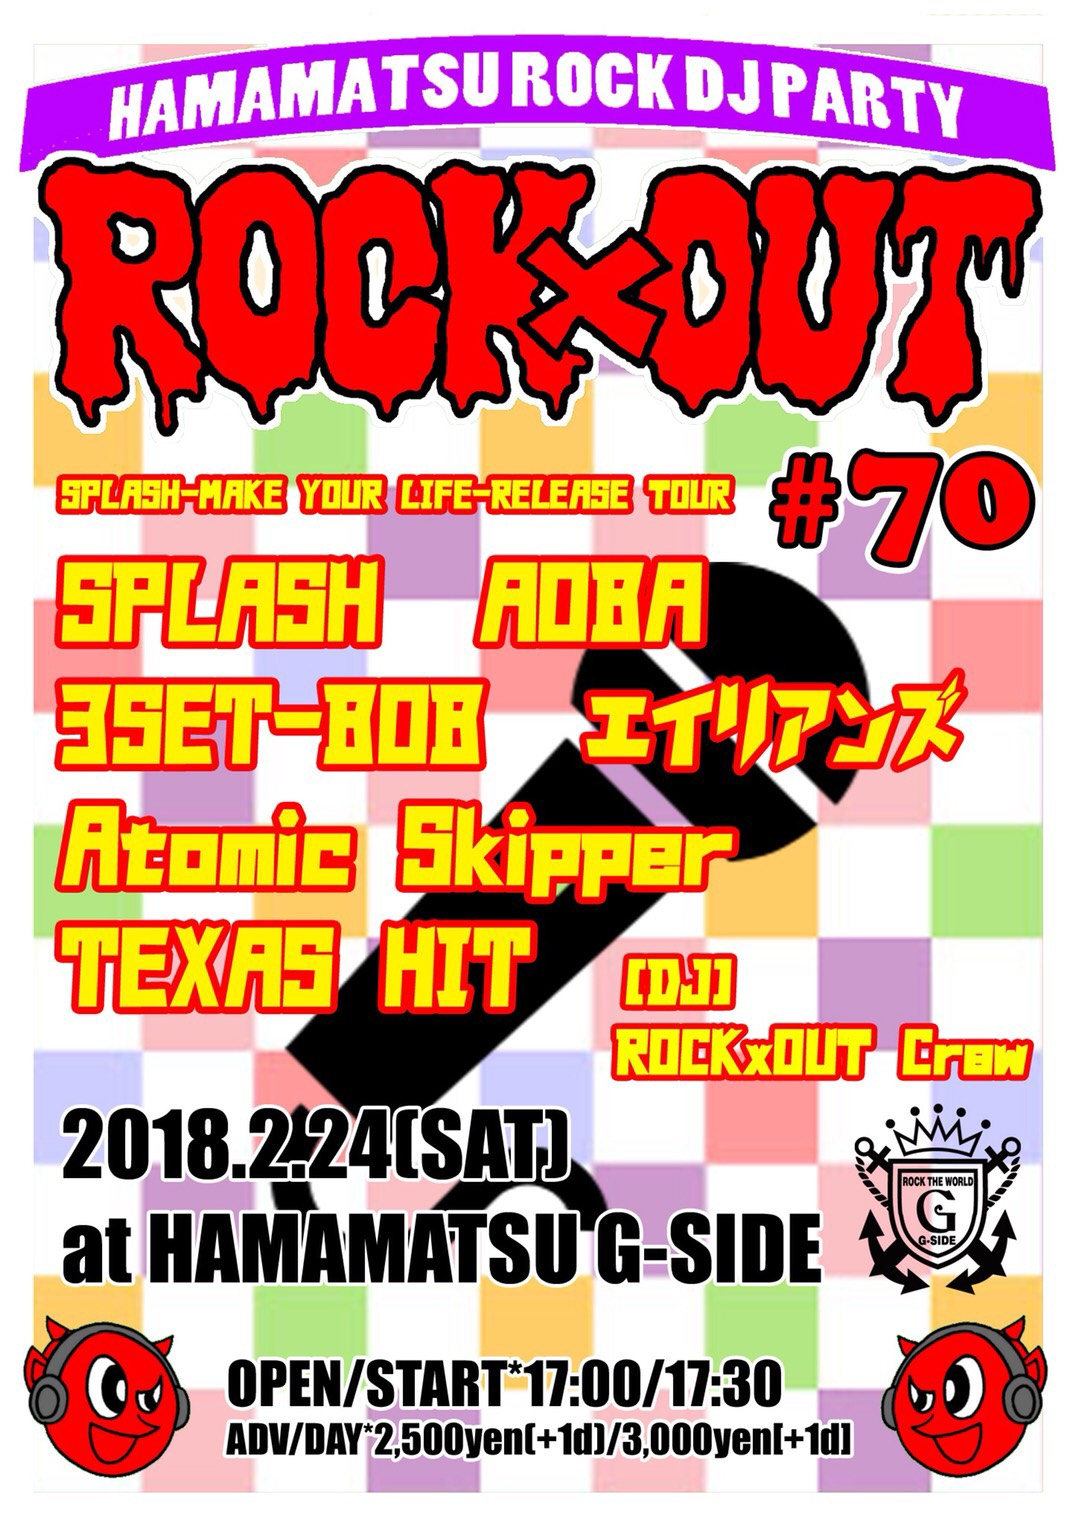 ROCK×OUT SPLASH-MAKE YOUR LIFE-RELEASE TOUR